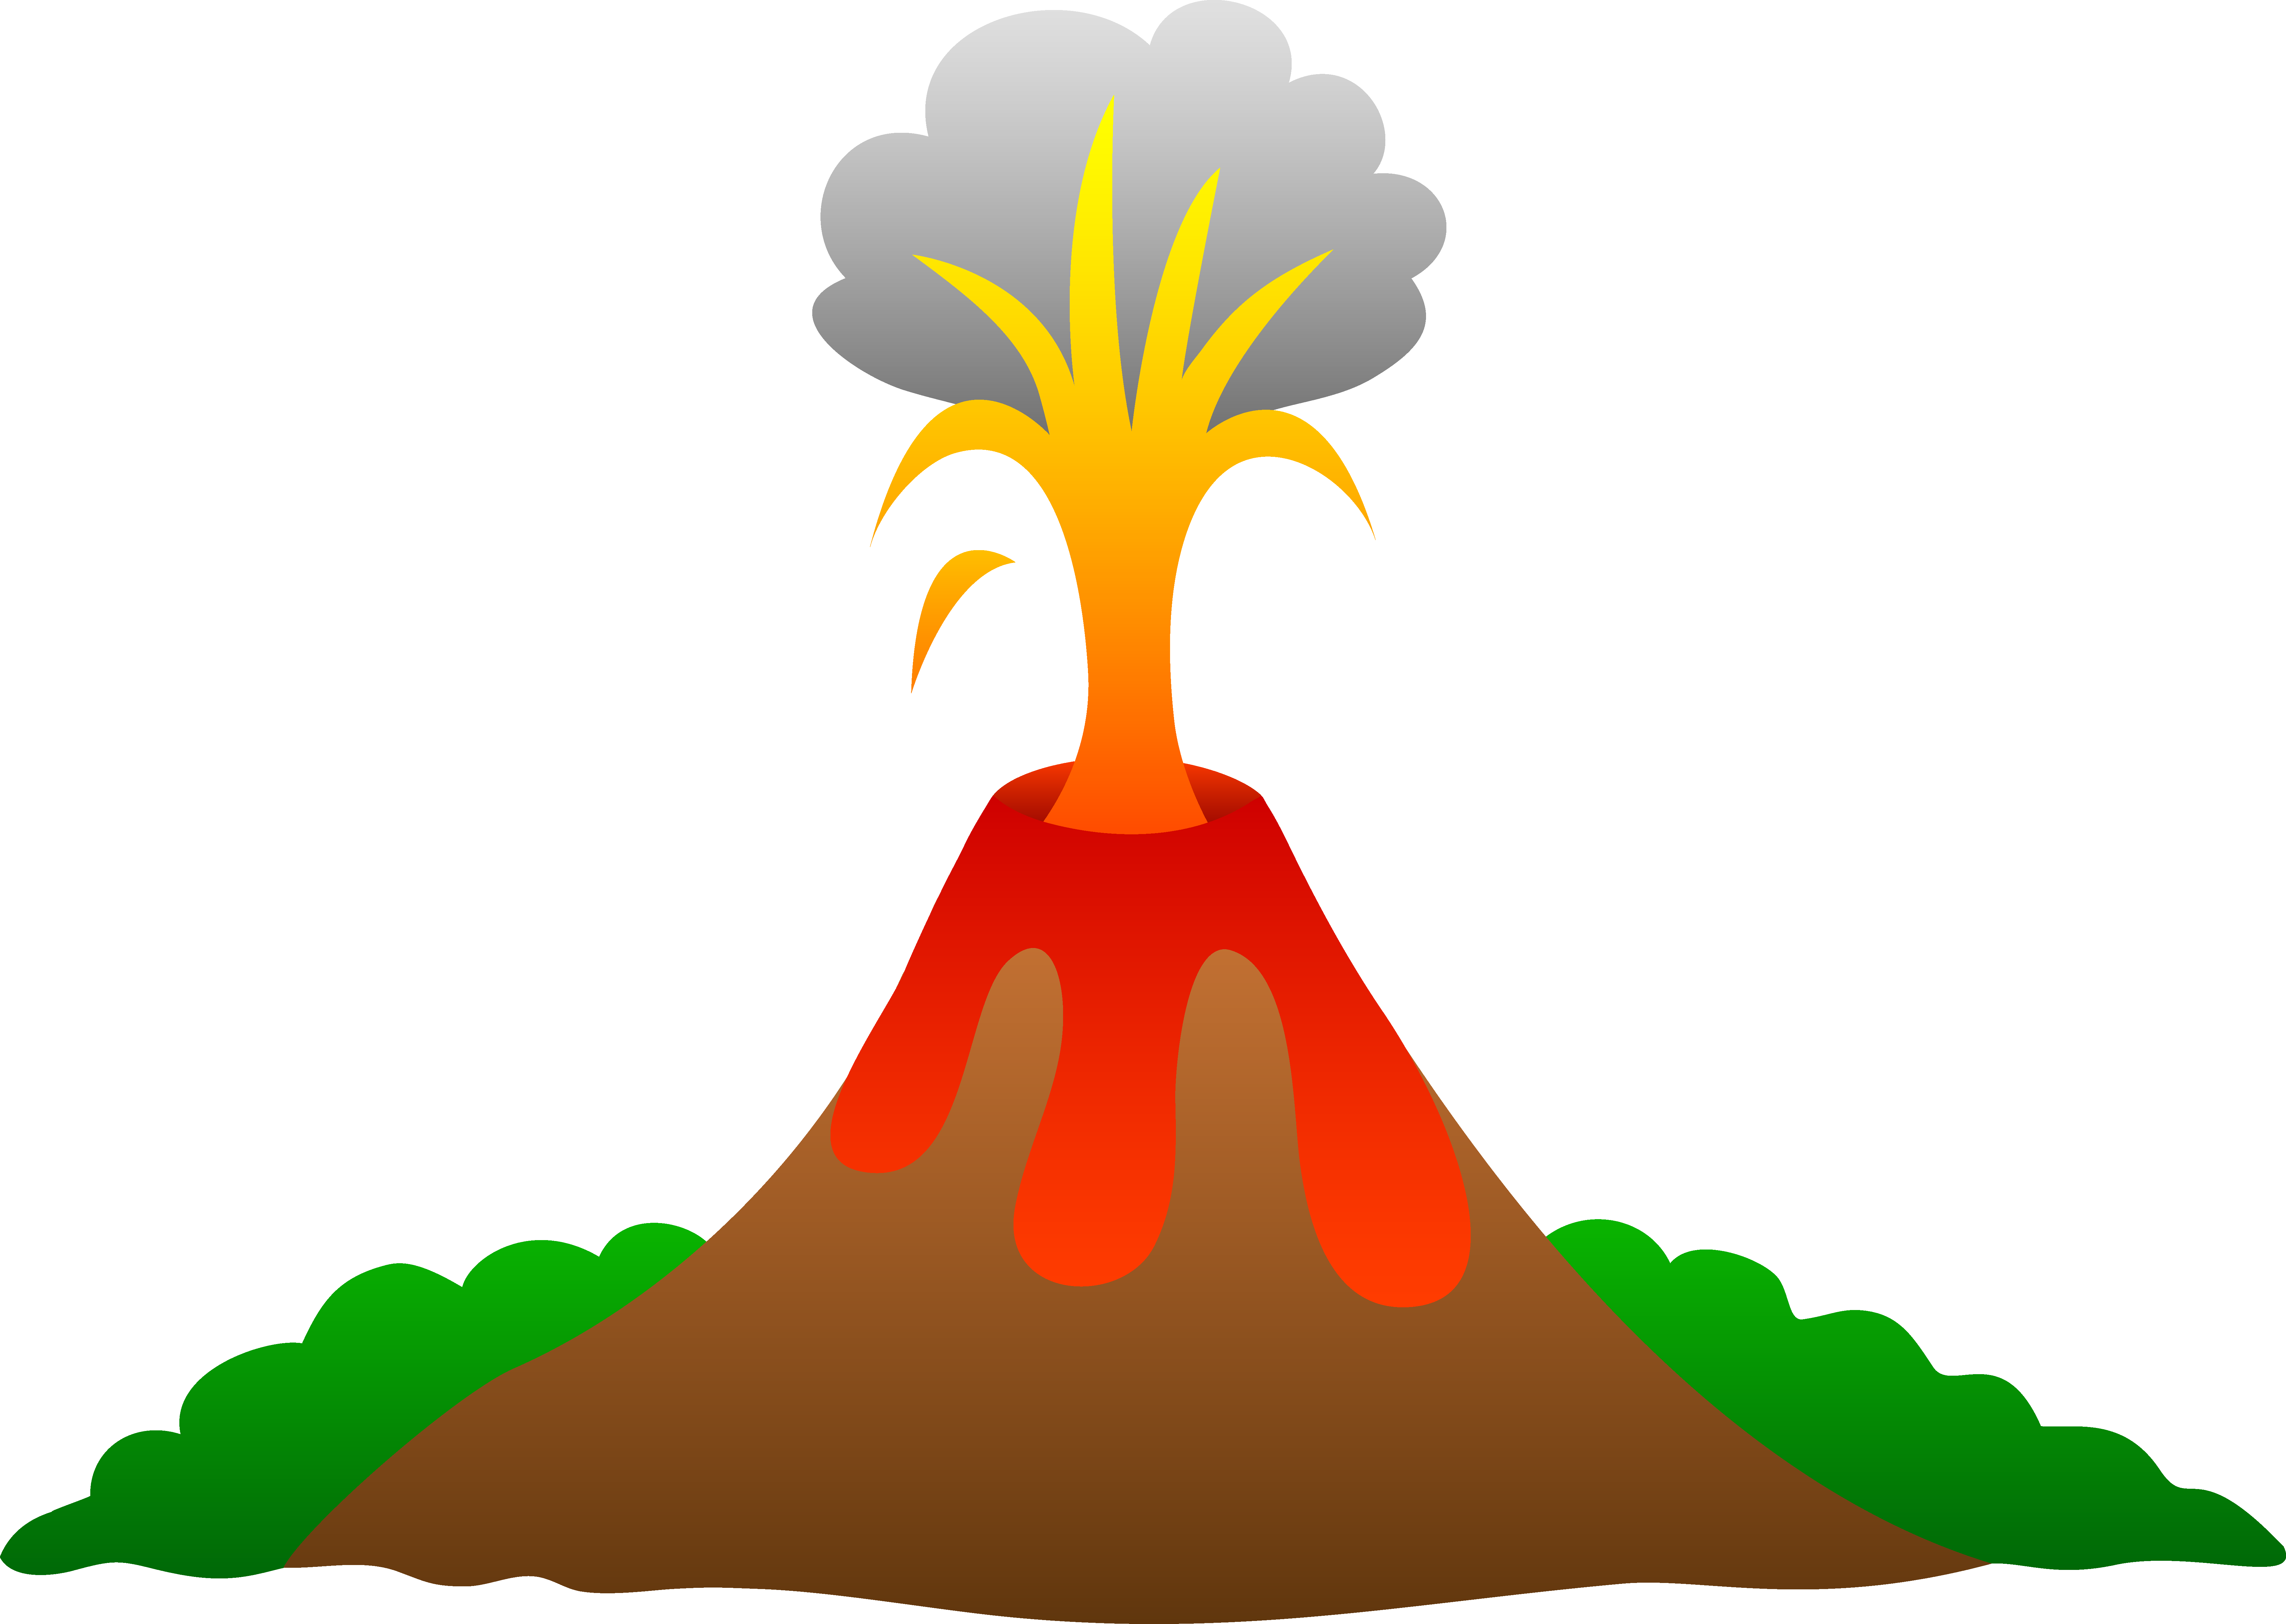 graphic black and white Mountain clipart volcanic mountain. Mt etna volcano project.